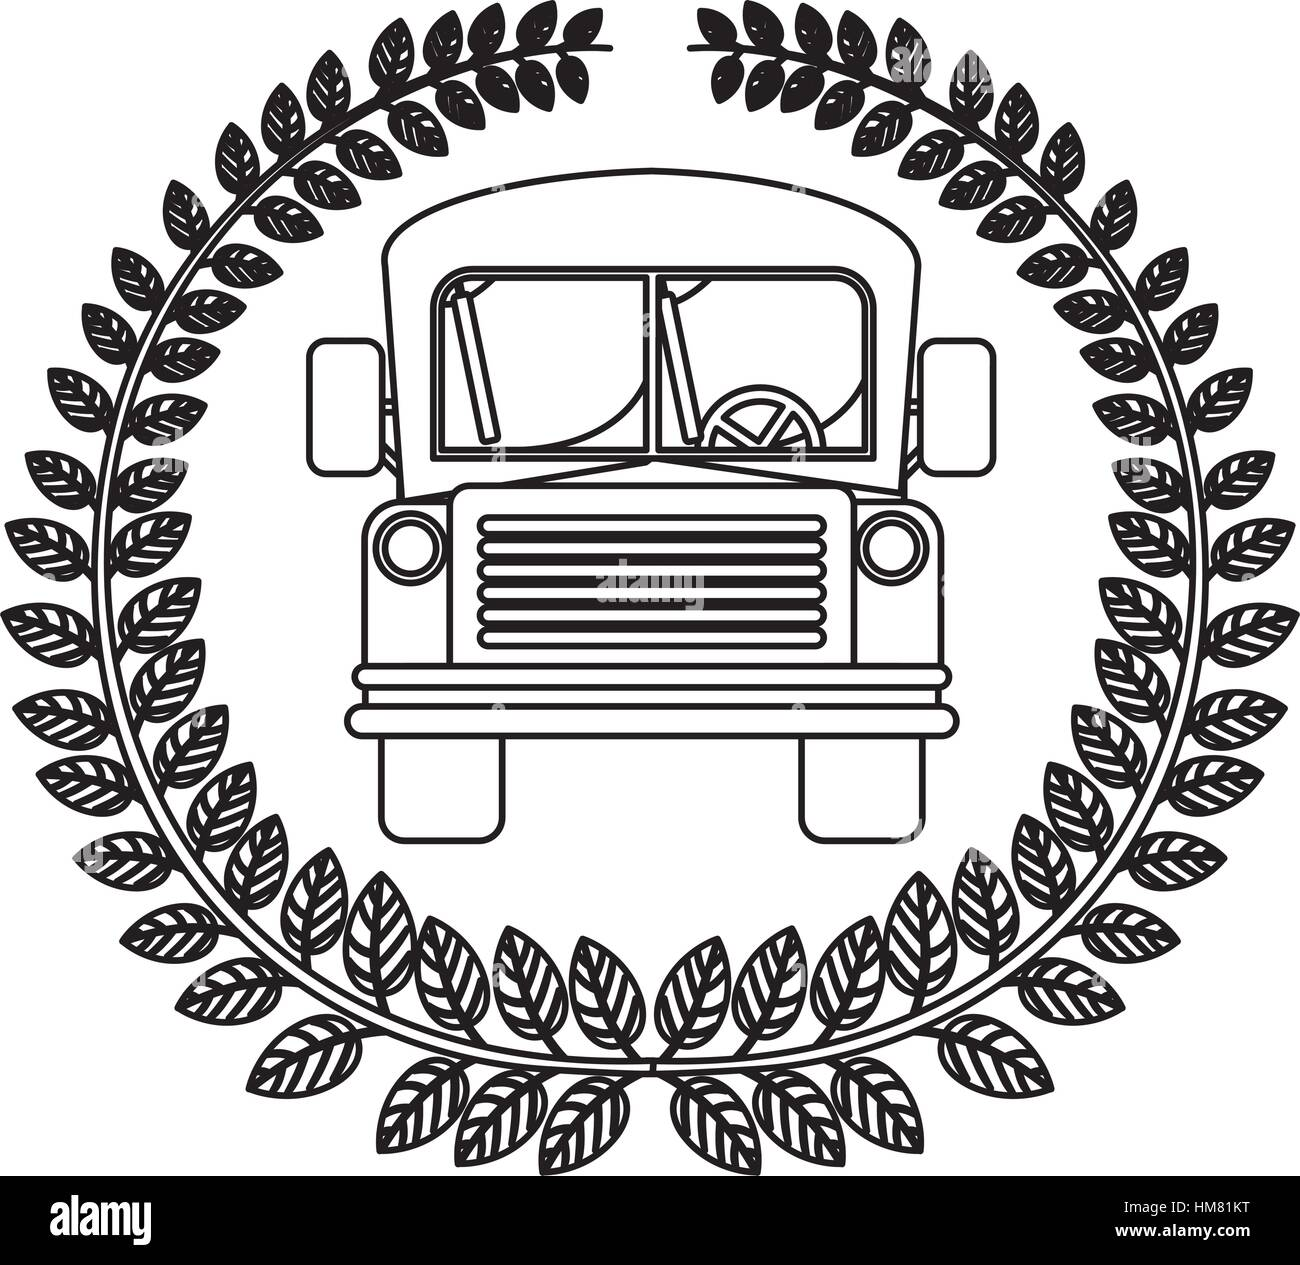 silhouette crown of leaves with school bus vector illustration - Stock Image